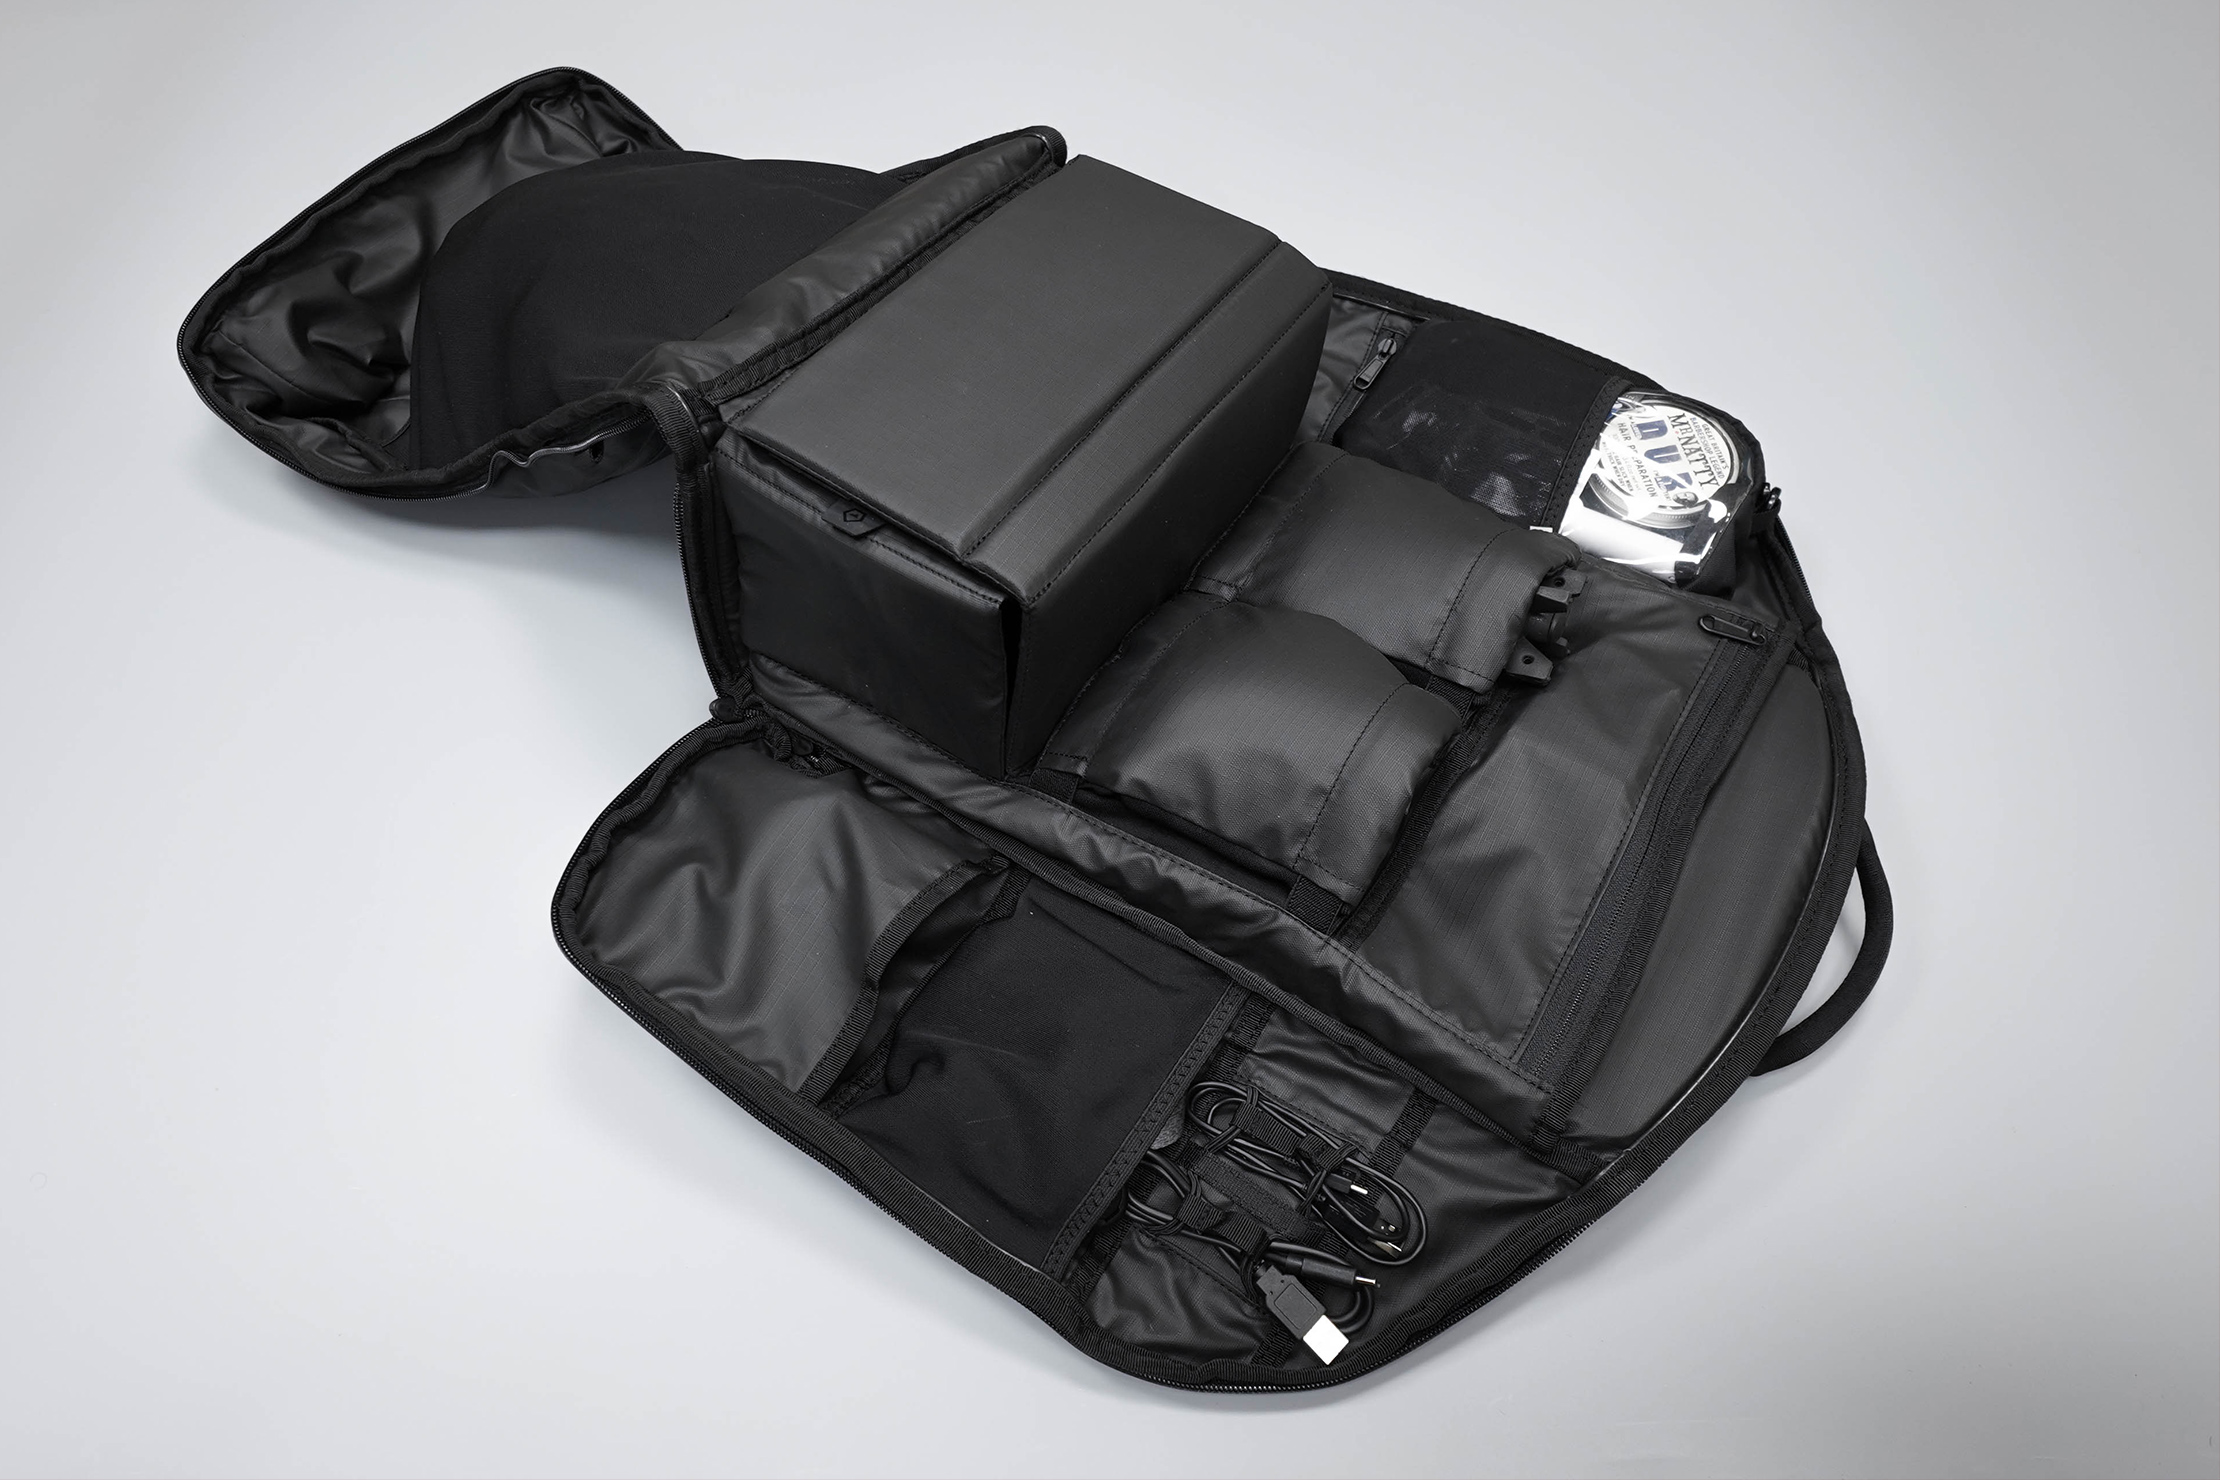 WANDRD DUO Daypack Main Compartment Fully Open